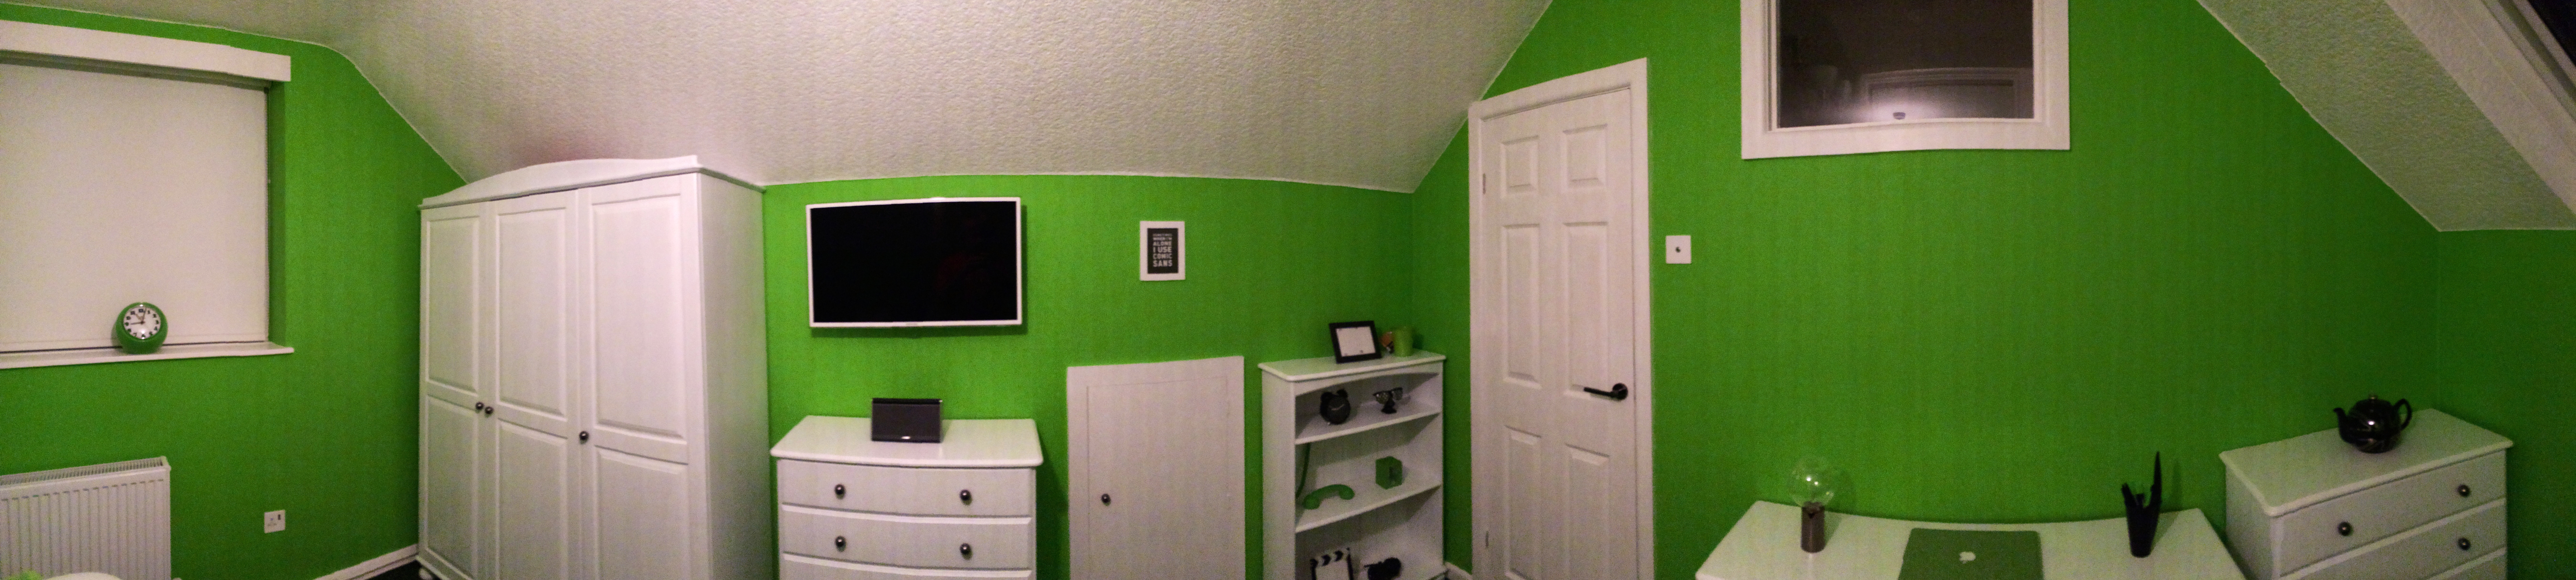 A panorama of my room